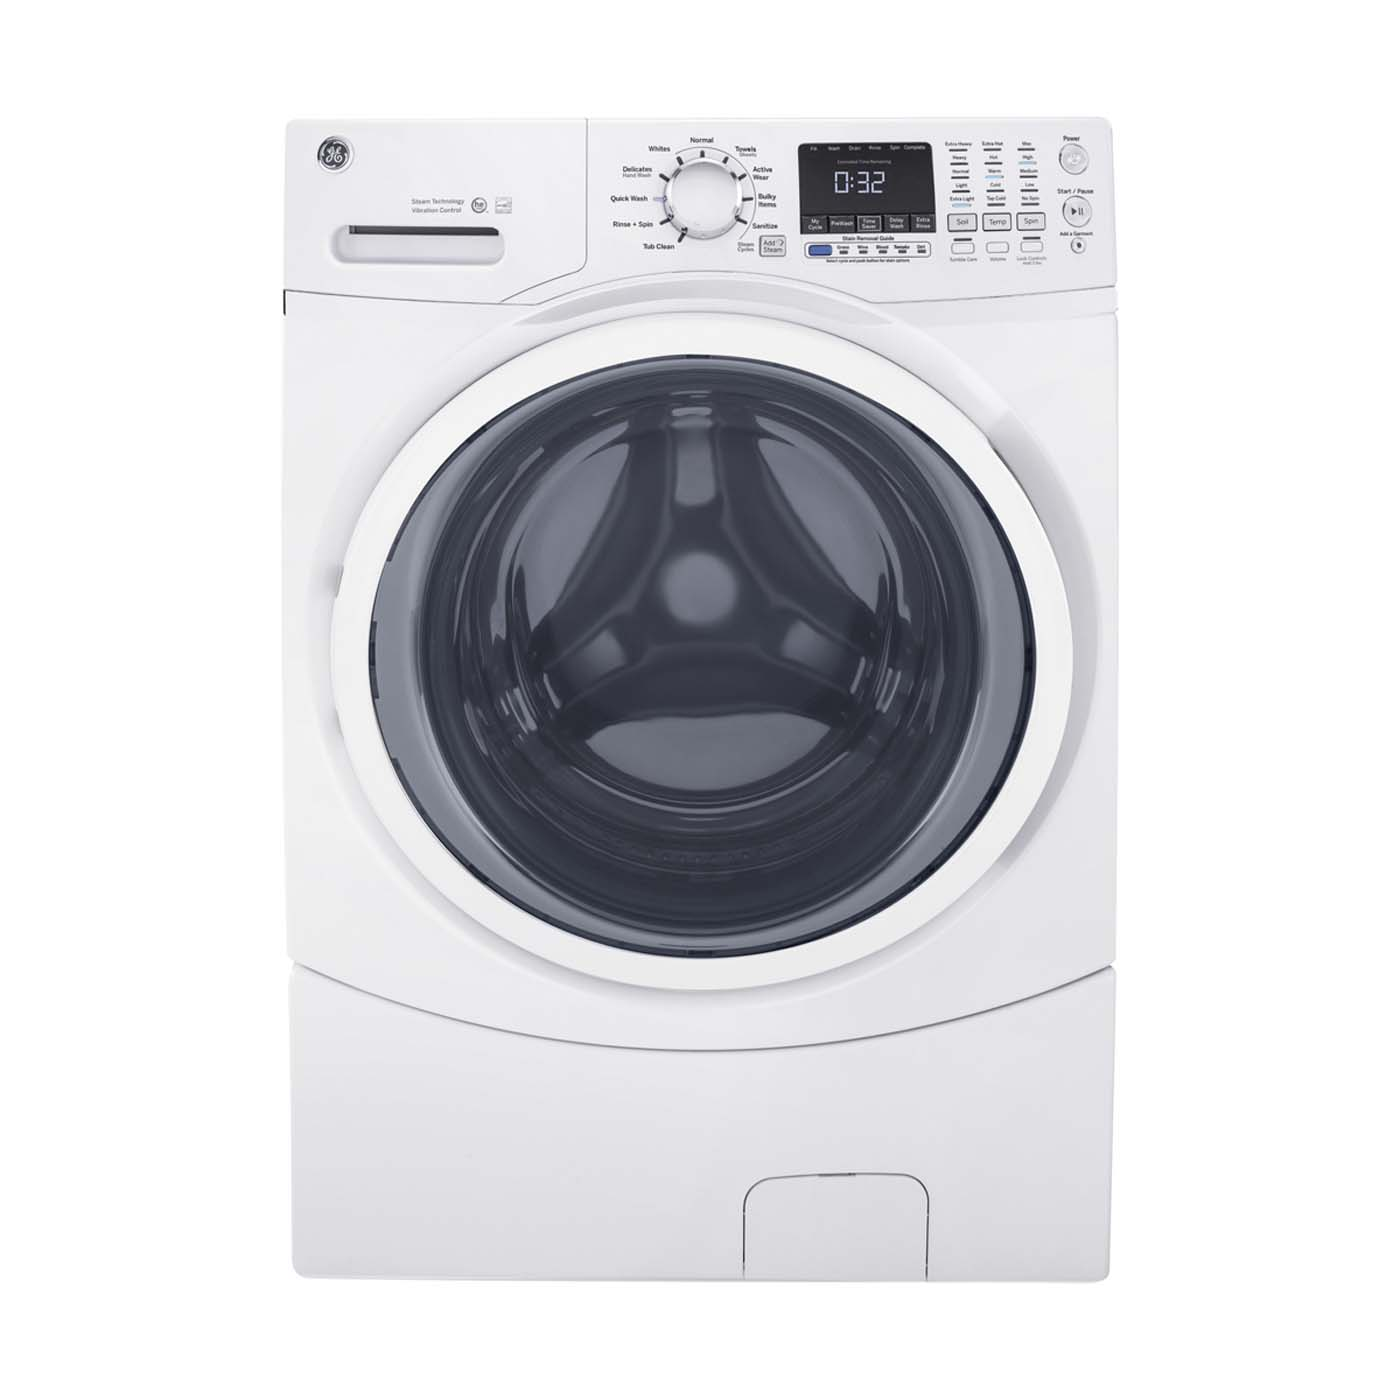 GE� 4.3 CU. FT. FRONT LOAD WASHING MACHINE, WHITE, 9 WASH CYCLES